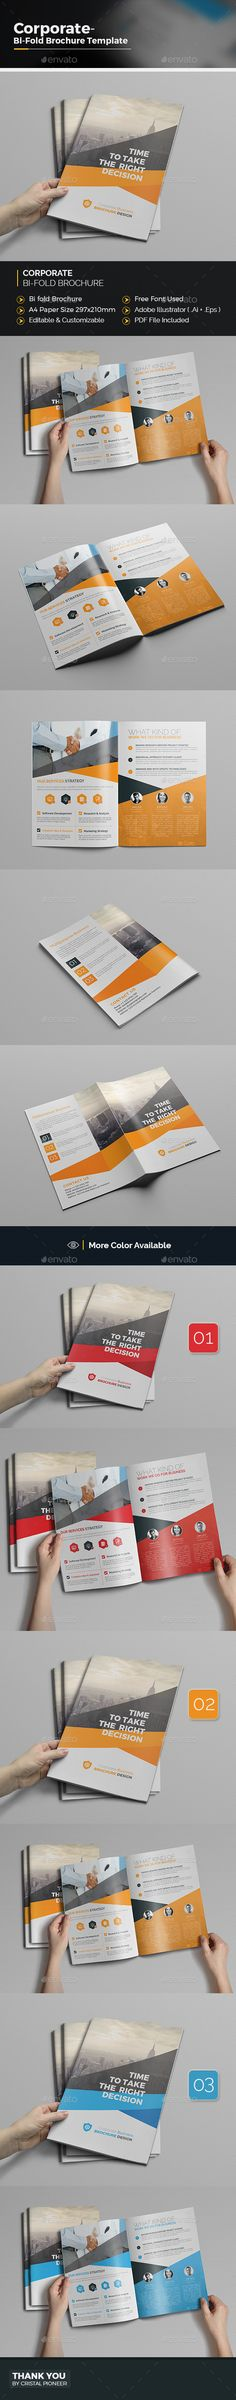 Bi fold Business Brochure  - EPS Template • Only available here ➝ http://graphicriver.net/item/bi-fold-business-brochure/16827865?ref=pxcr